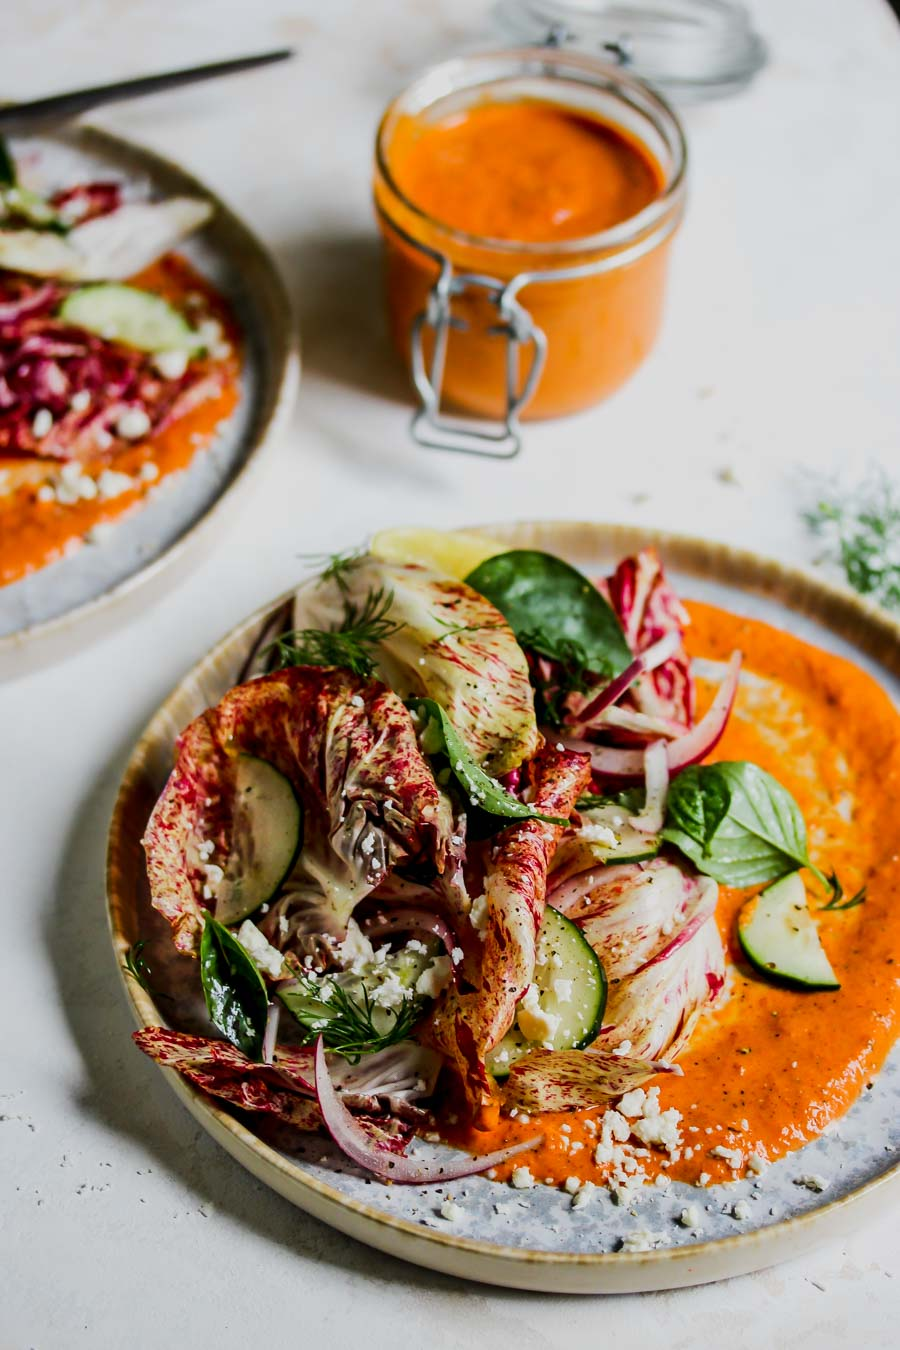 5 Minute Almond Butter Romesco Sauce